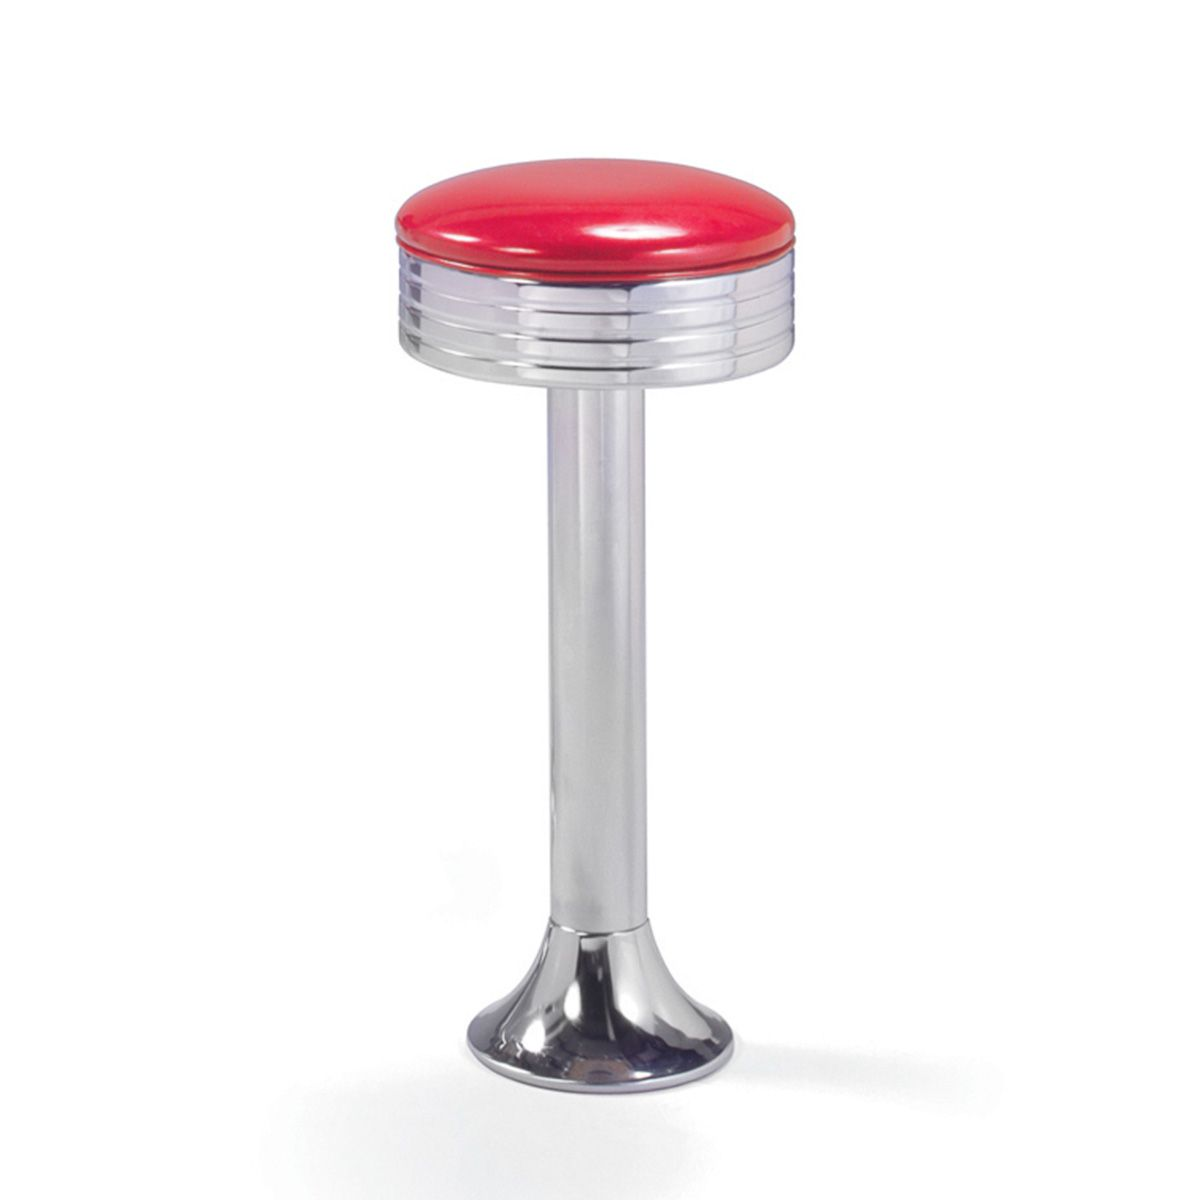 This Bolt Down Soda Fountain Stool Looks Just Like The Ones In Old  Fashioned Soda Fountains